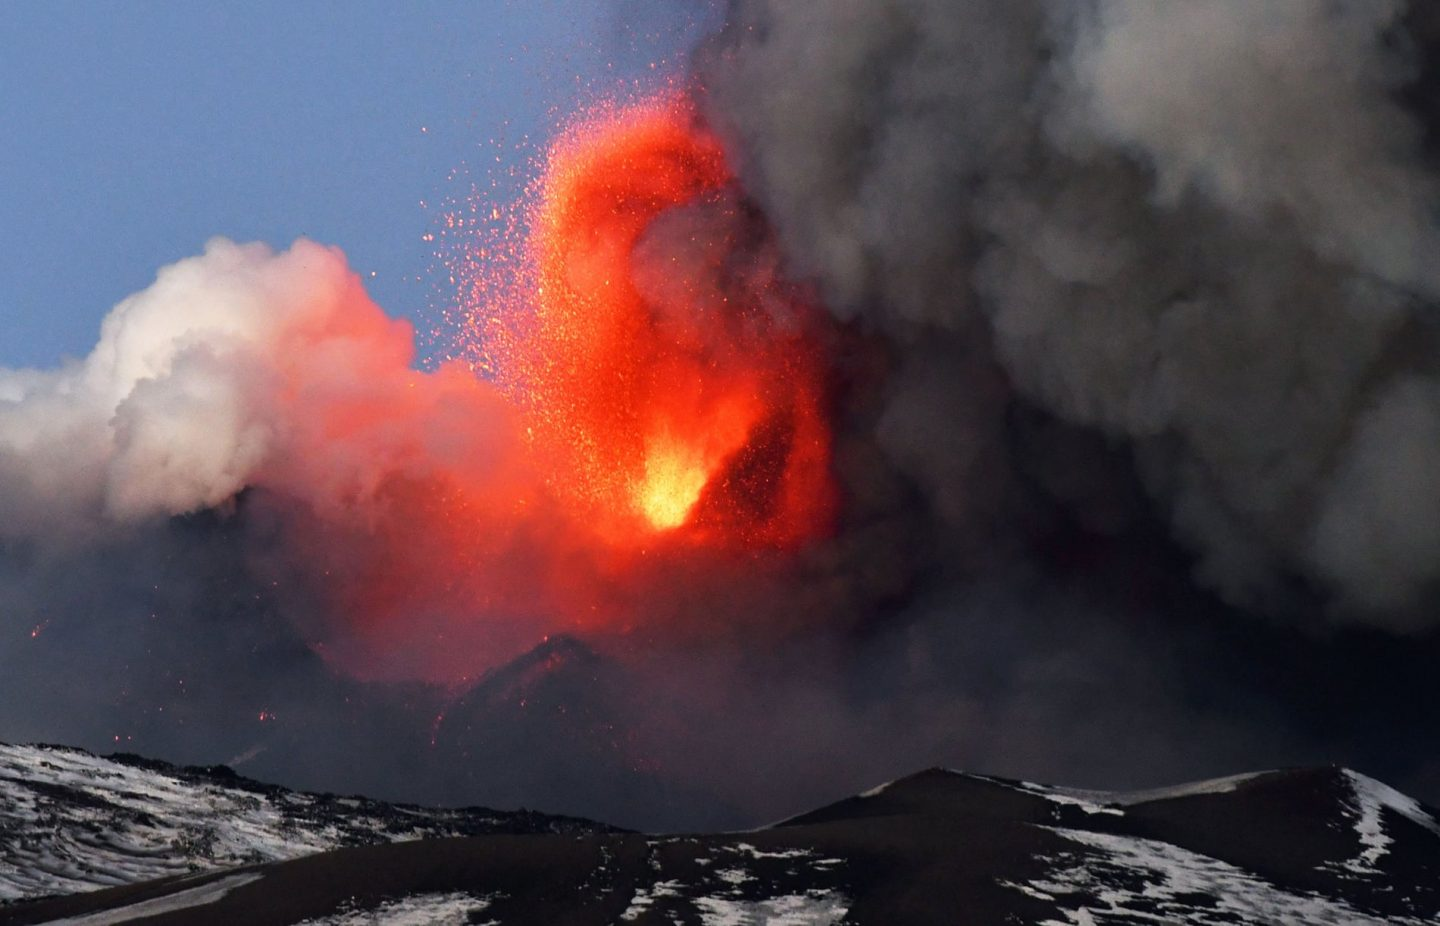 Spectacular eruption from Italy's Mount Etna